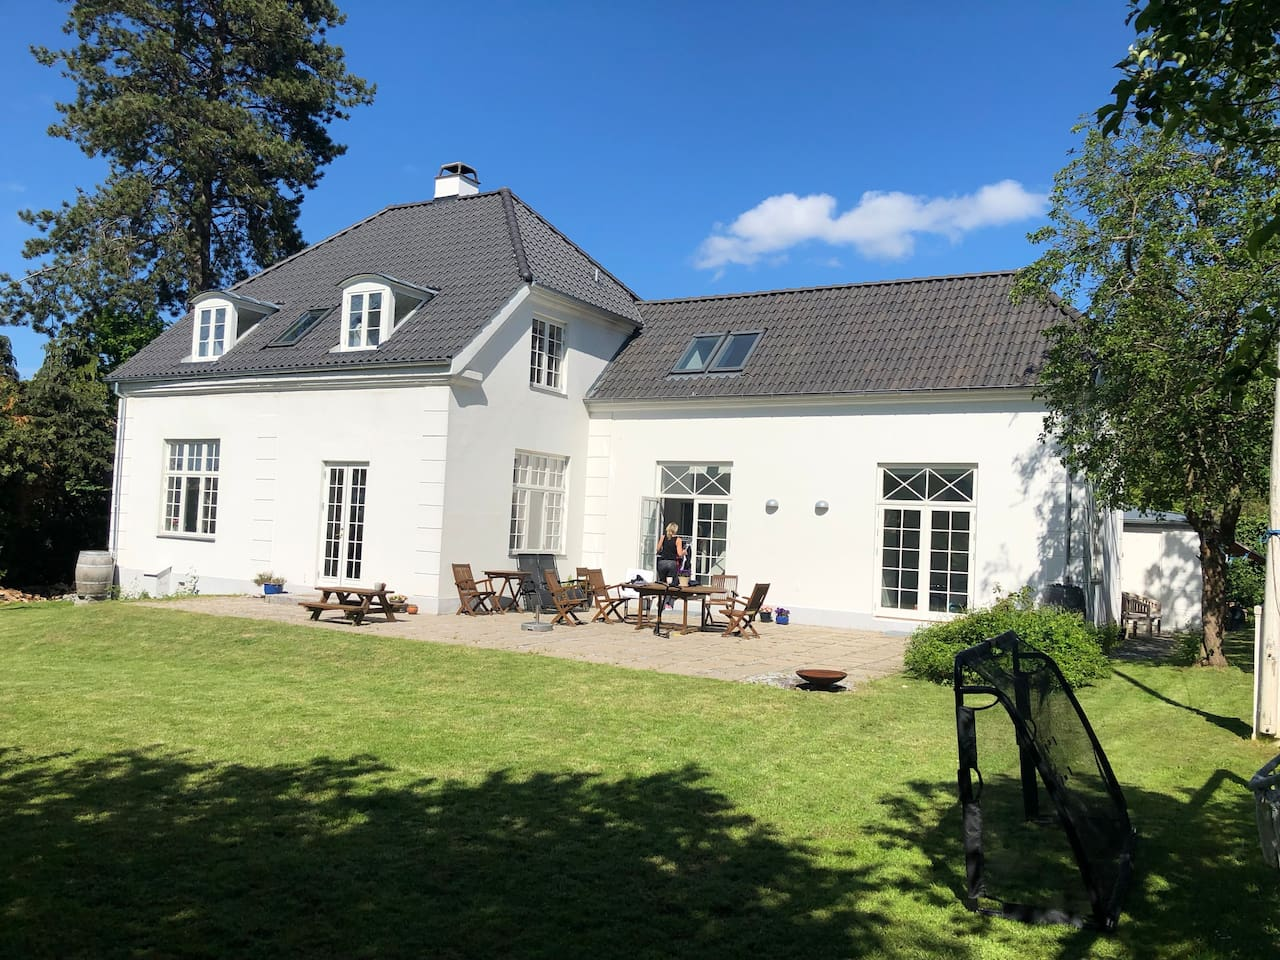 Large Villa 15 min. from central Copenhagen, surrounded by lake and forrest.